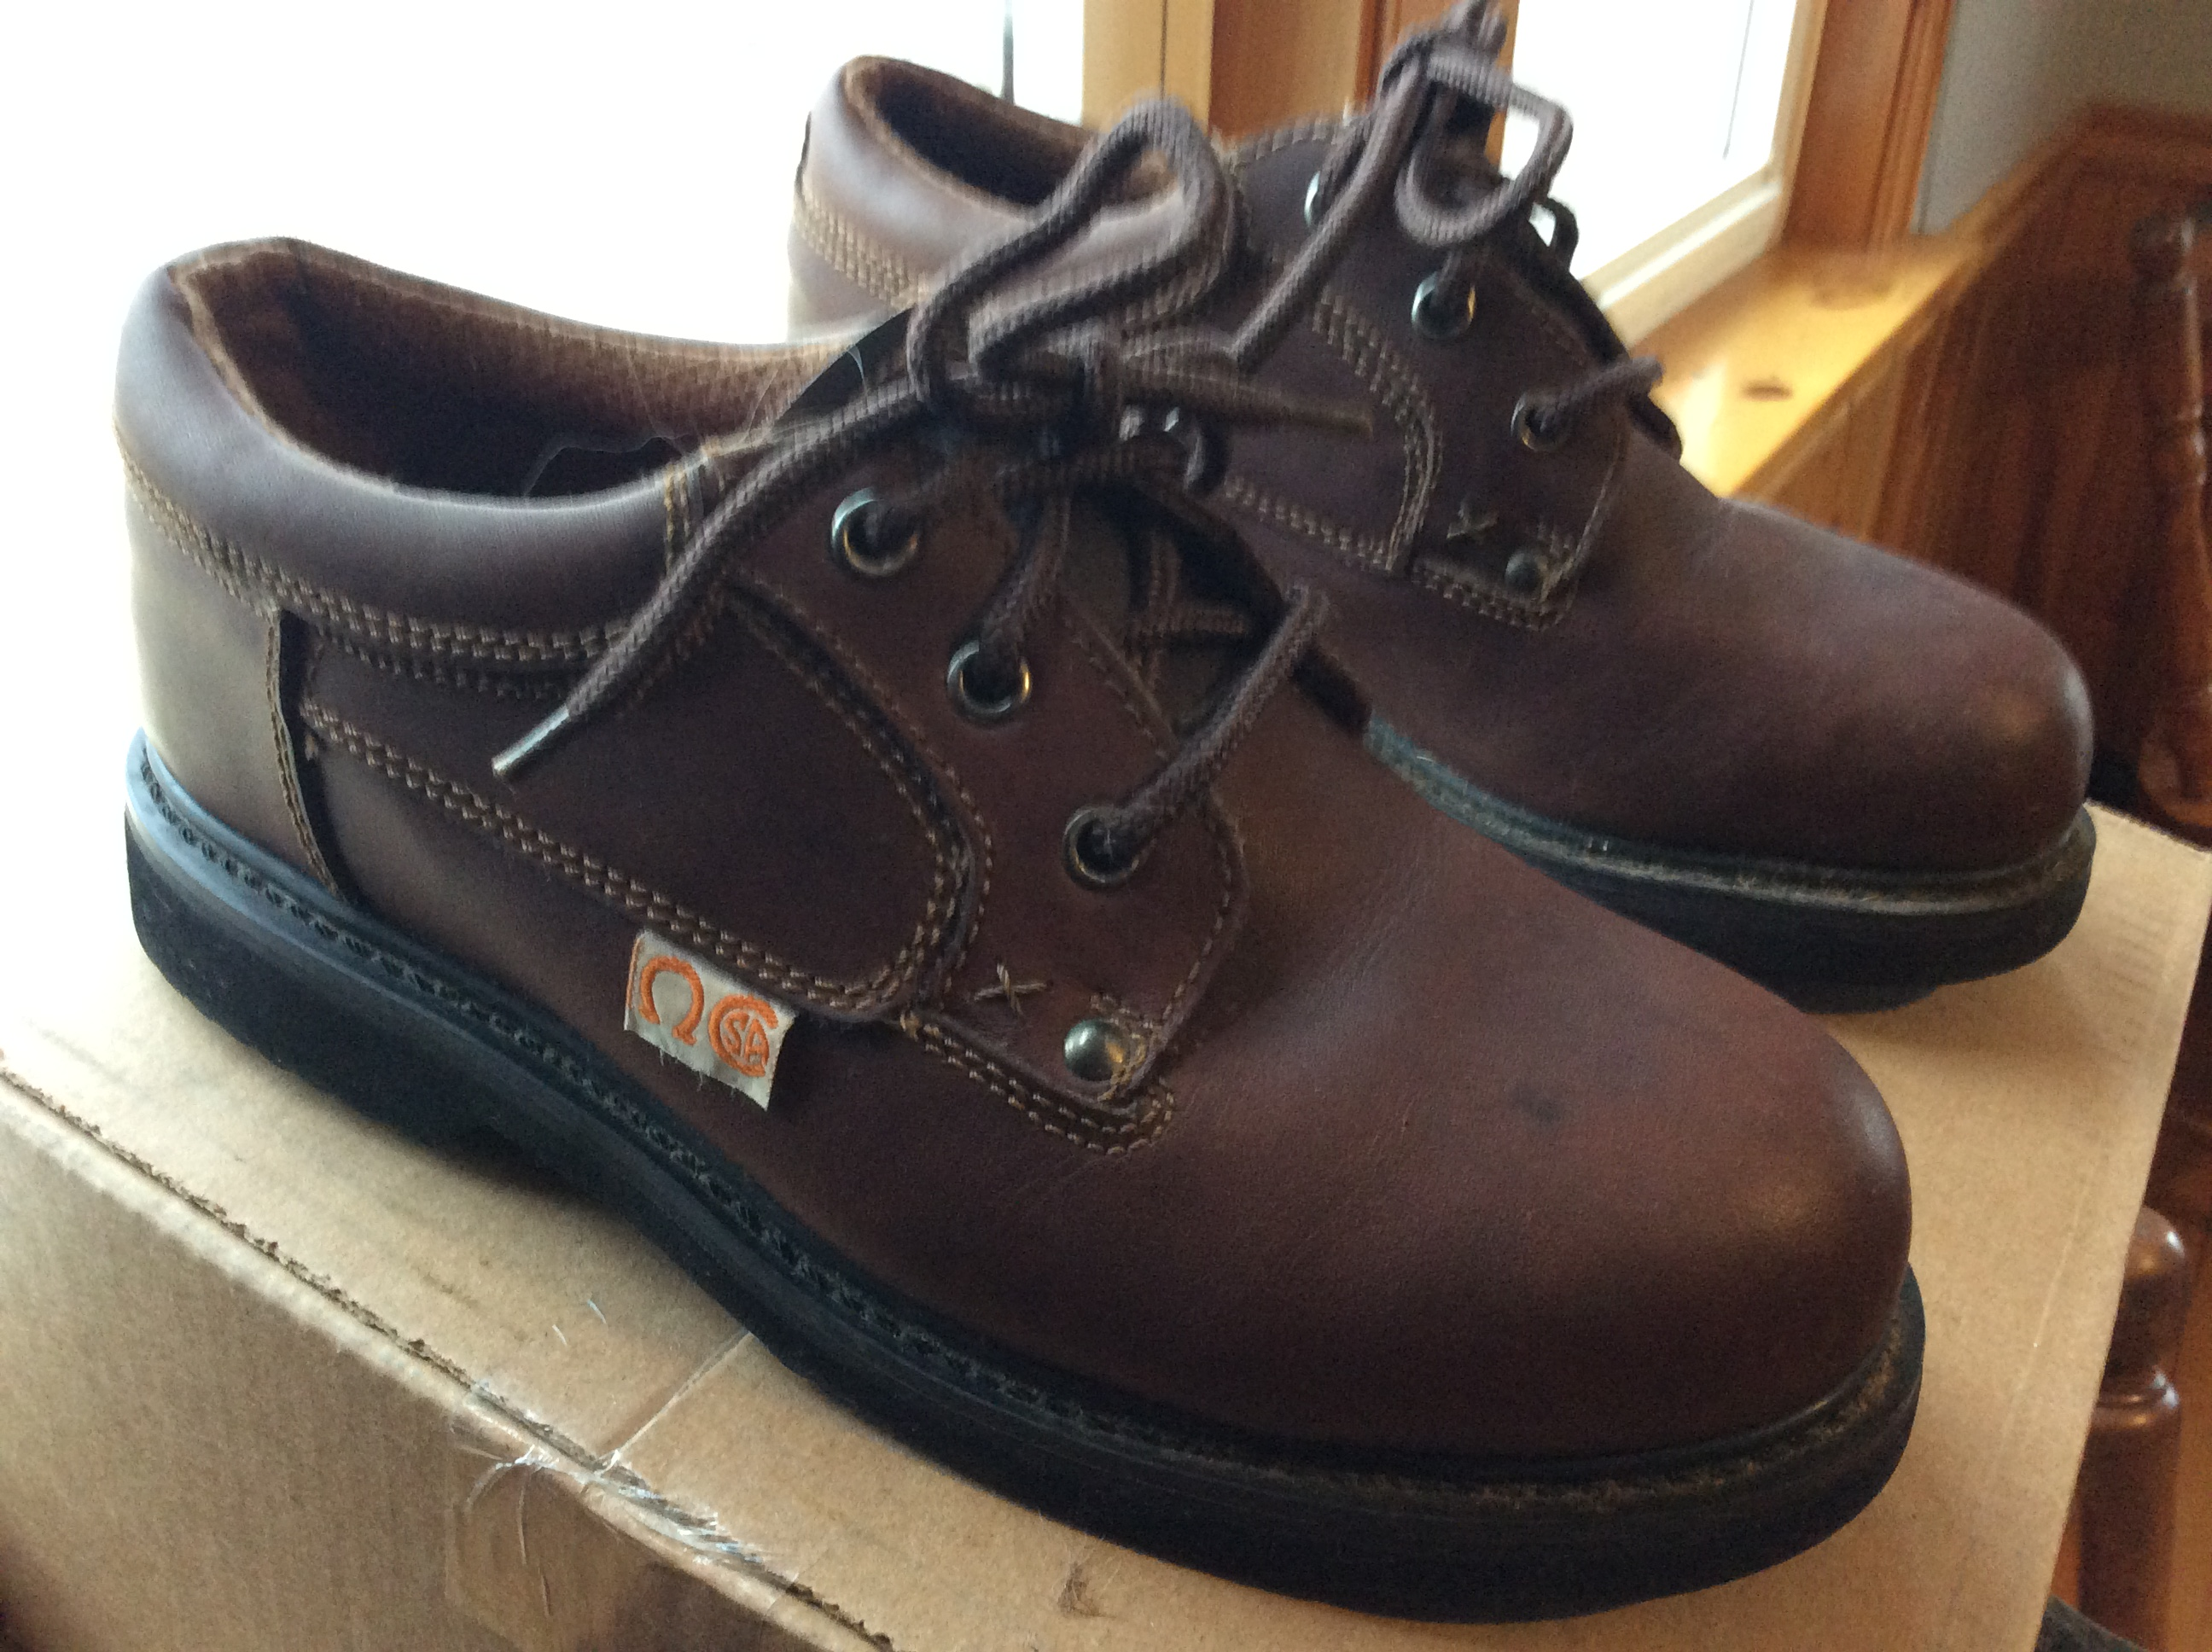 C.s.a. Steel toe shoes